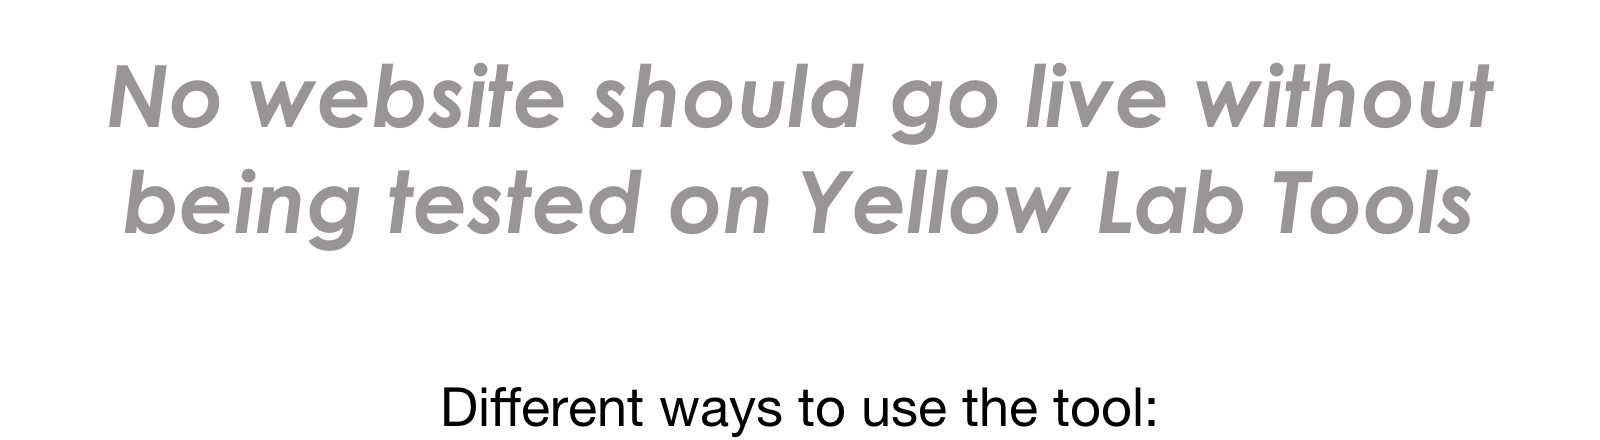 No website should go live without being tested with Yellow Lab Tools